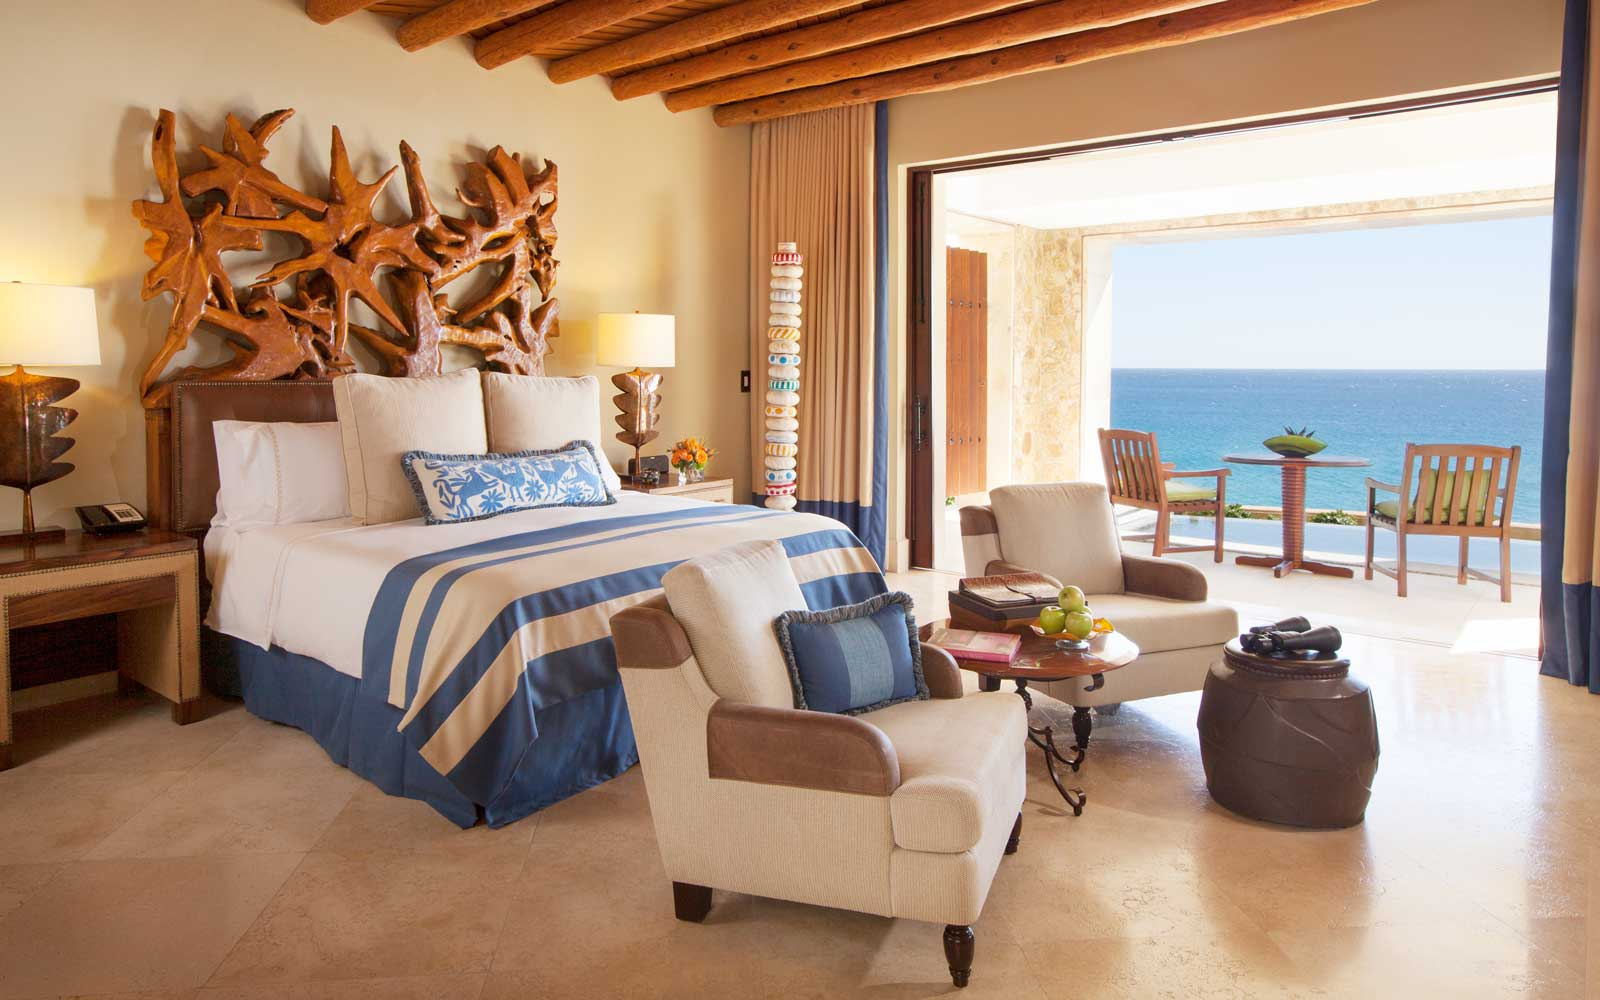 3. Resort at Pedregal, Cabo San Lucas